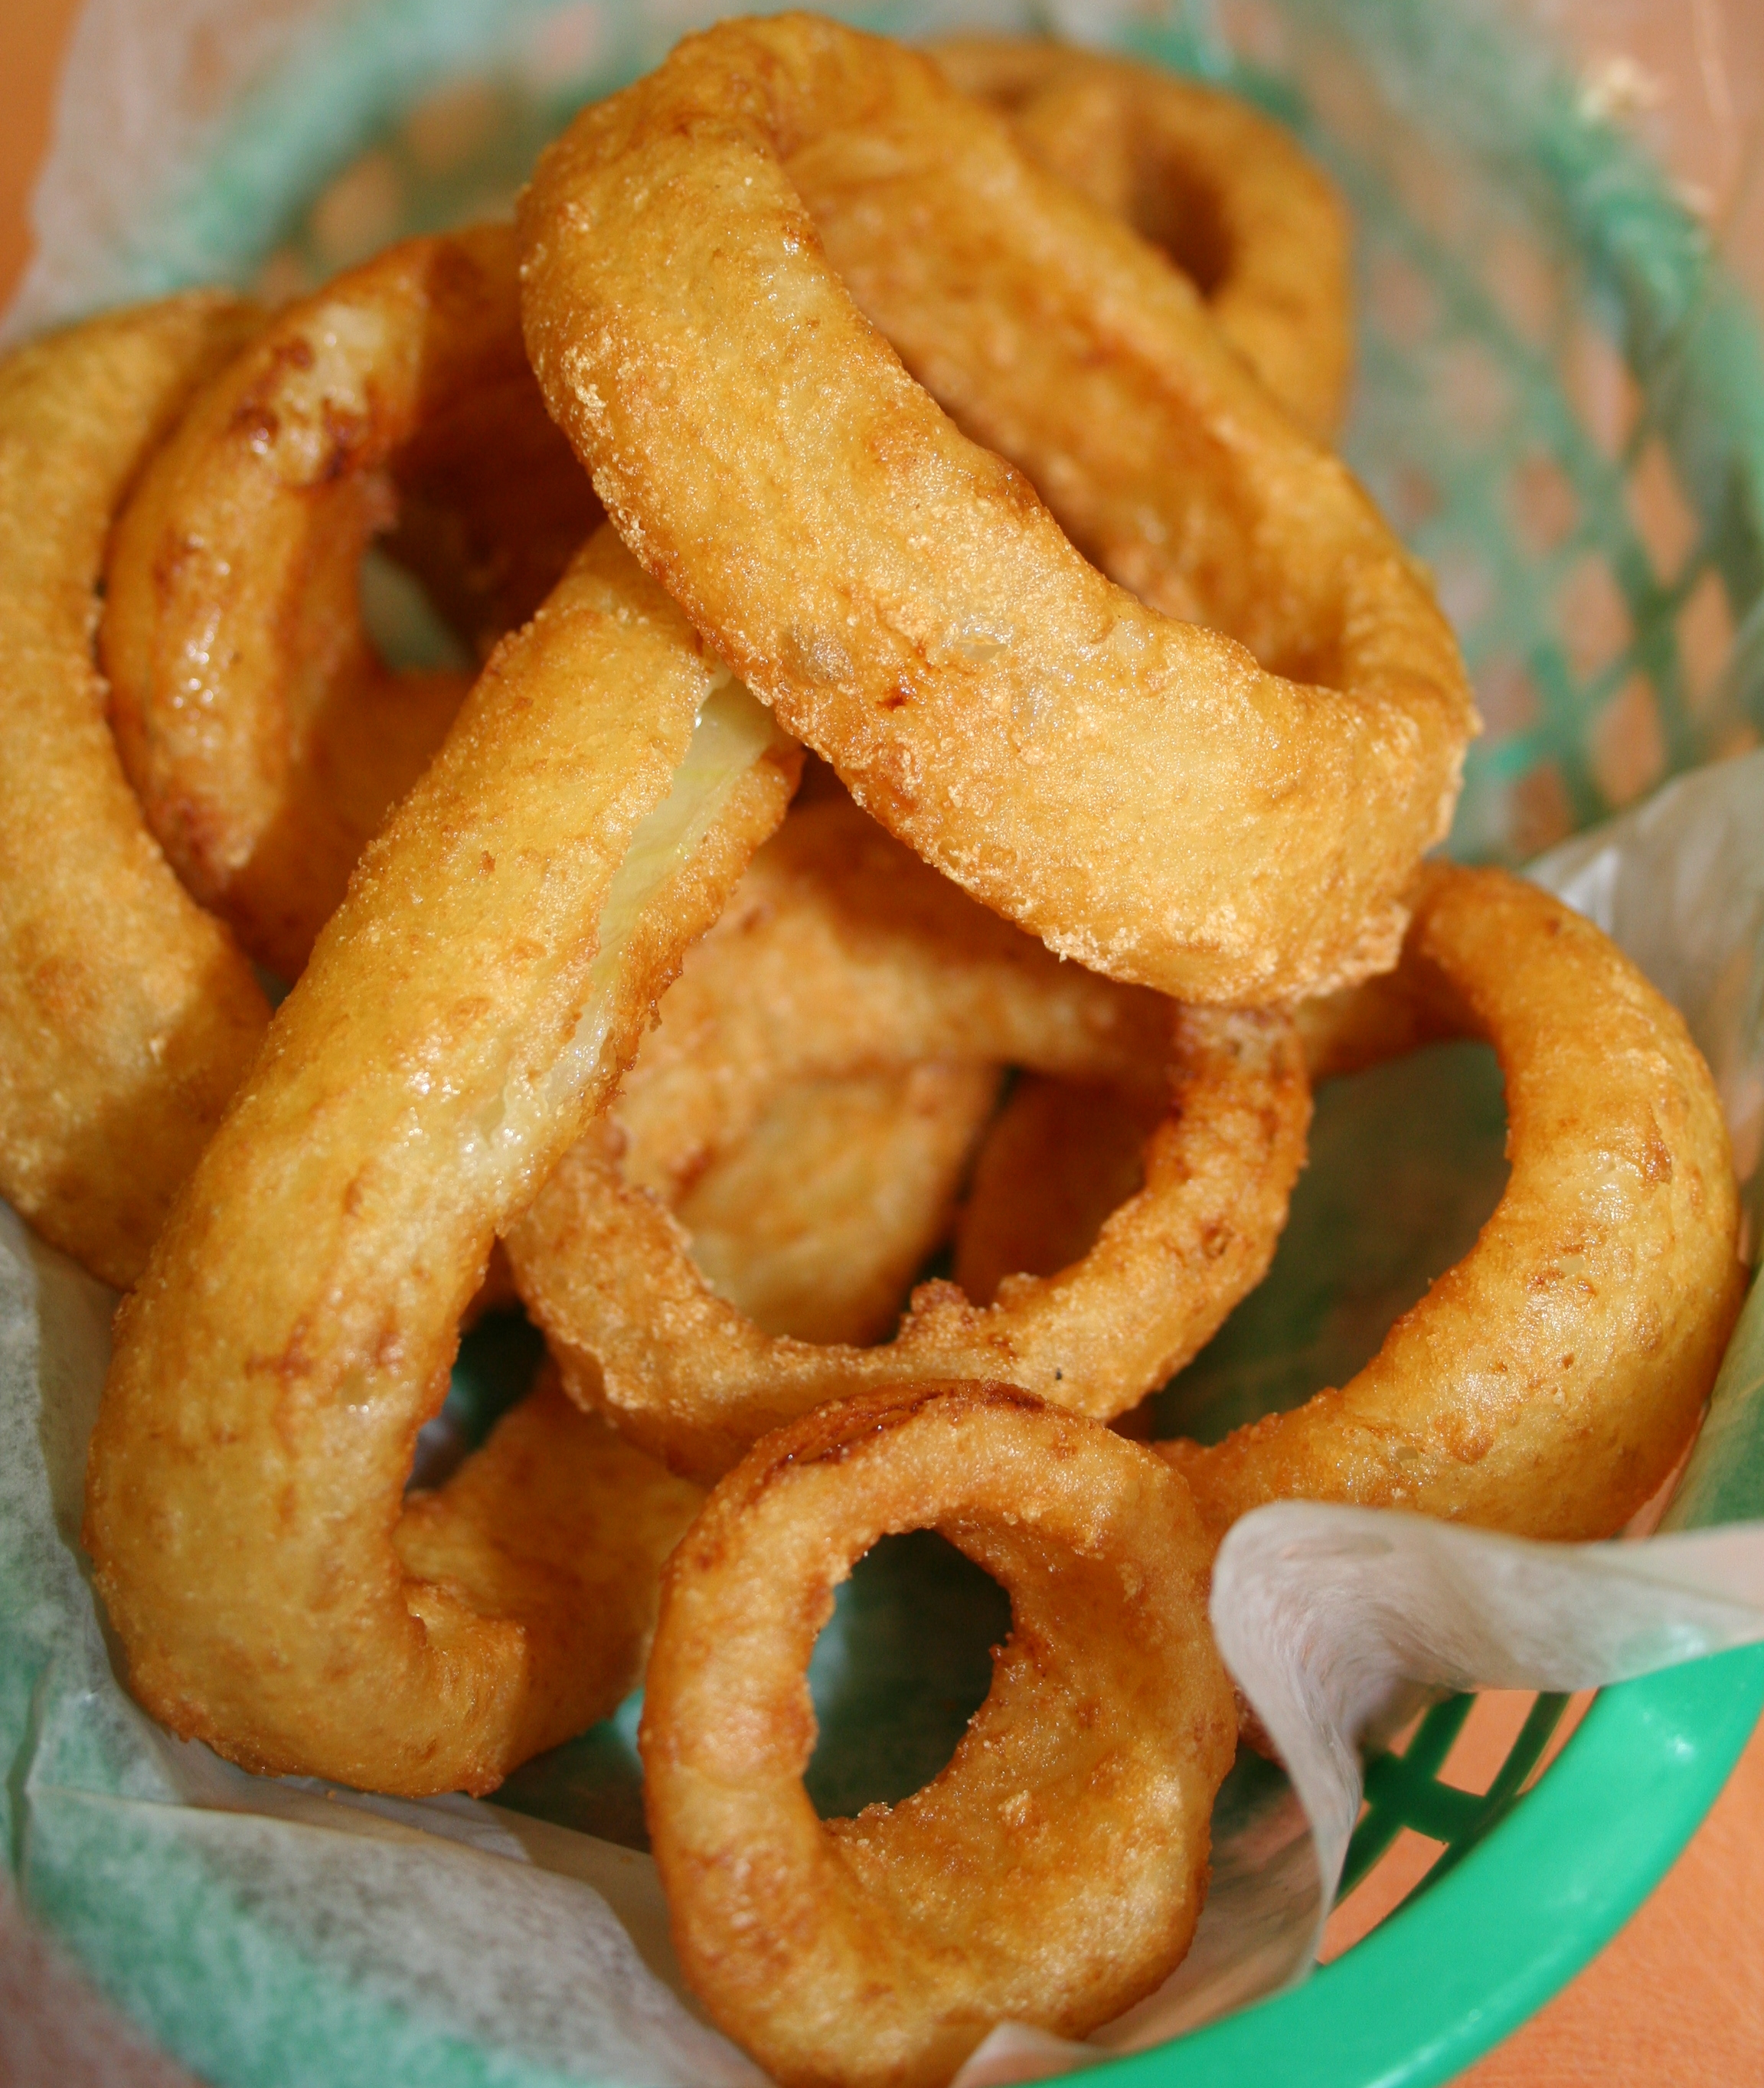 File:OnionRings.JPG - Wikimedia Commons